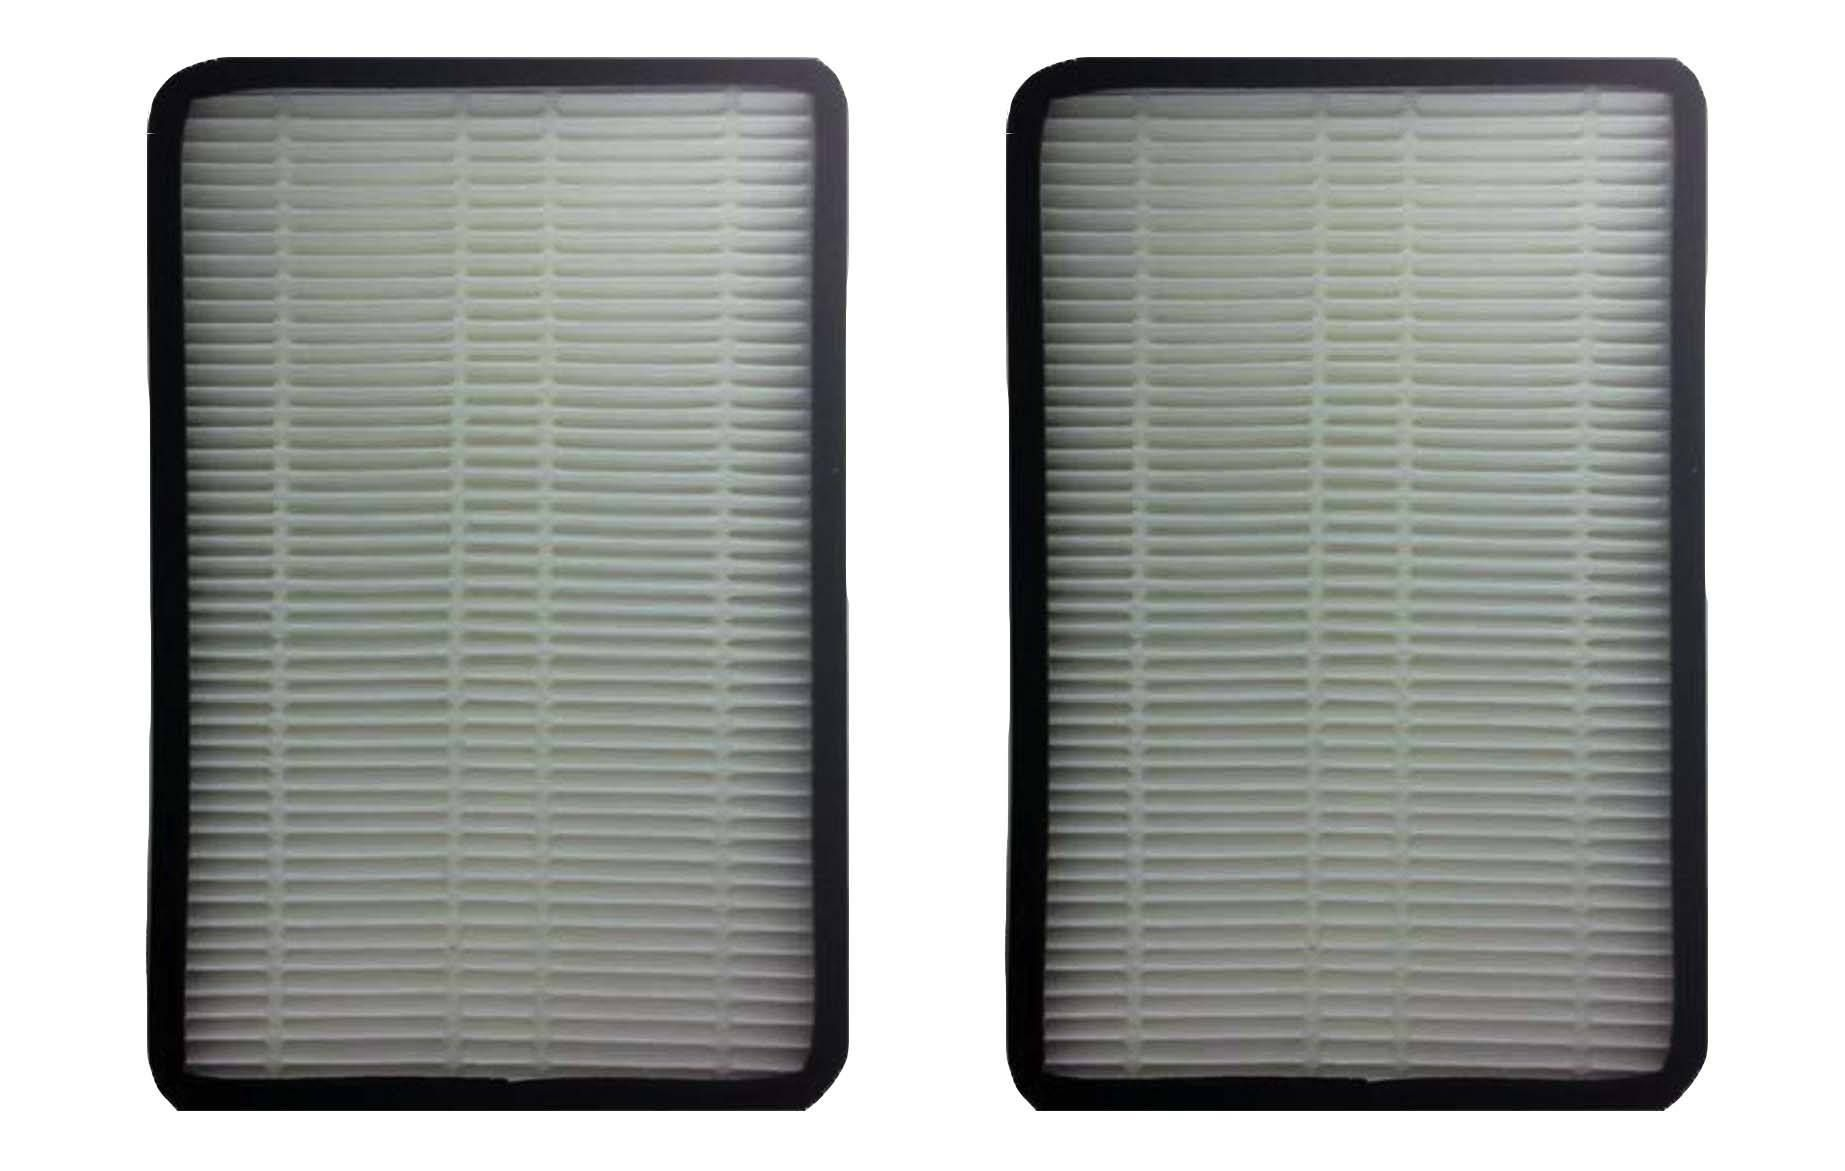 Crucial Vacuum Air Filter Replacement Part 86880, 20